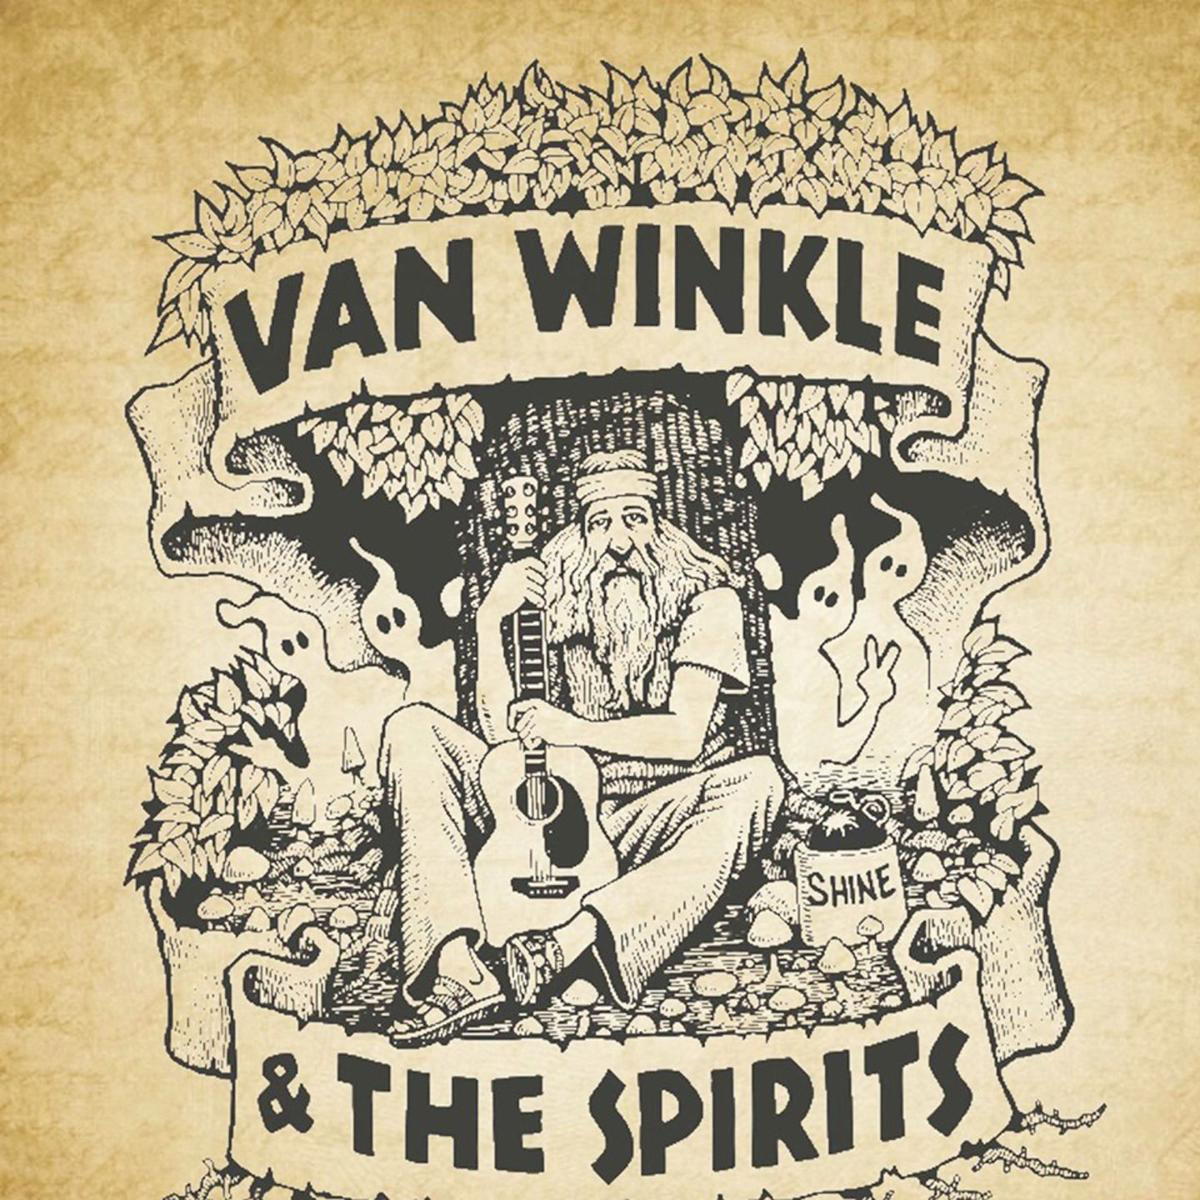 Van Winkle & the Spirits release debut album